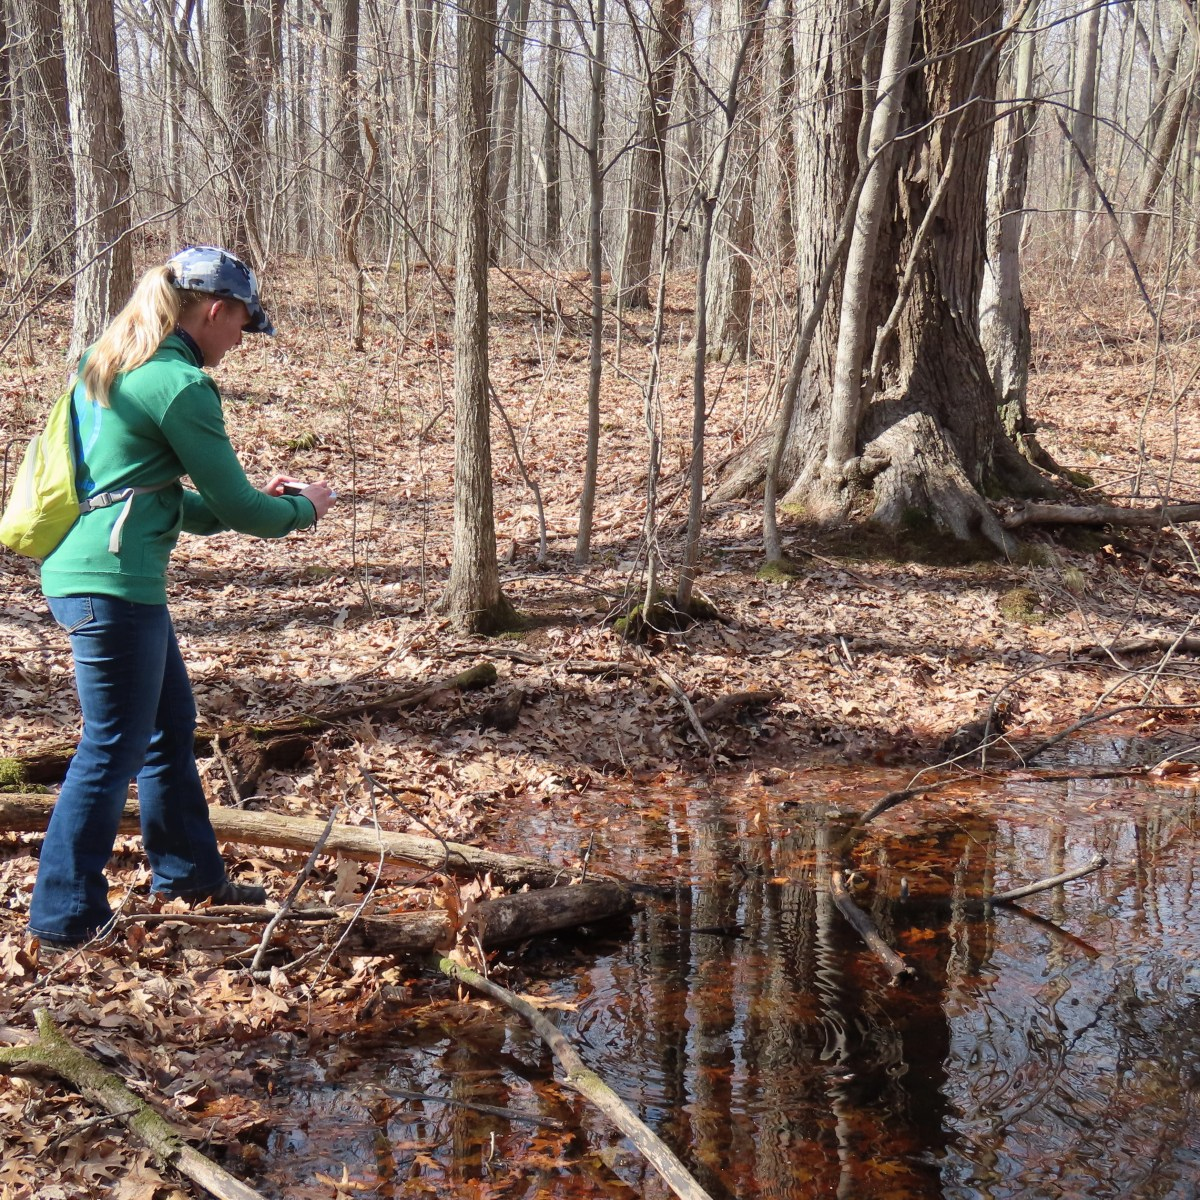 A woman stands at the edge of a vernal pond taking photos of wood frogs